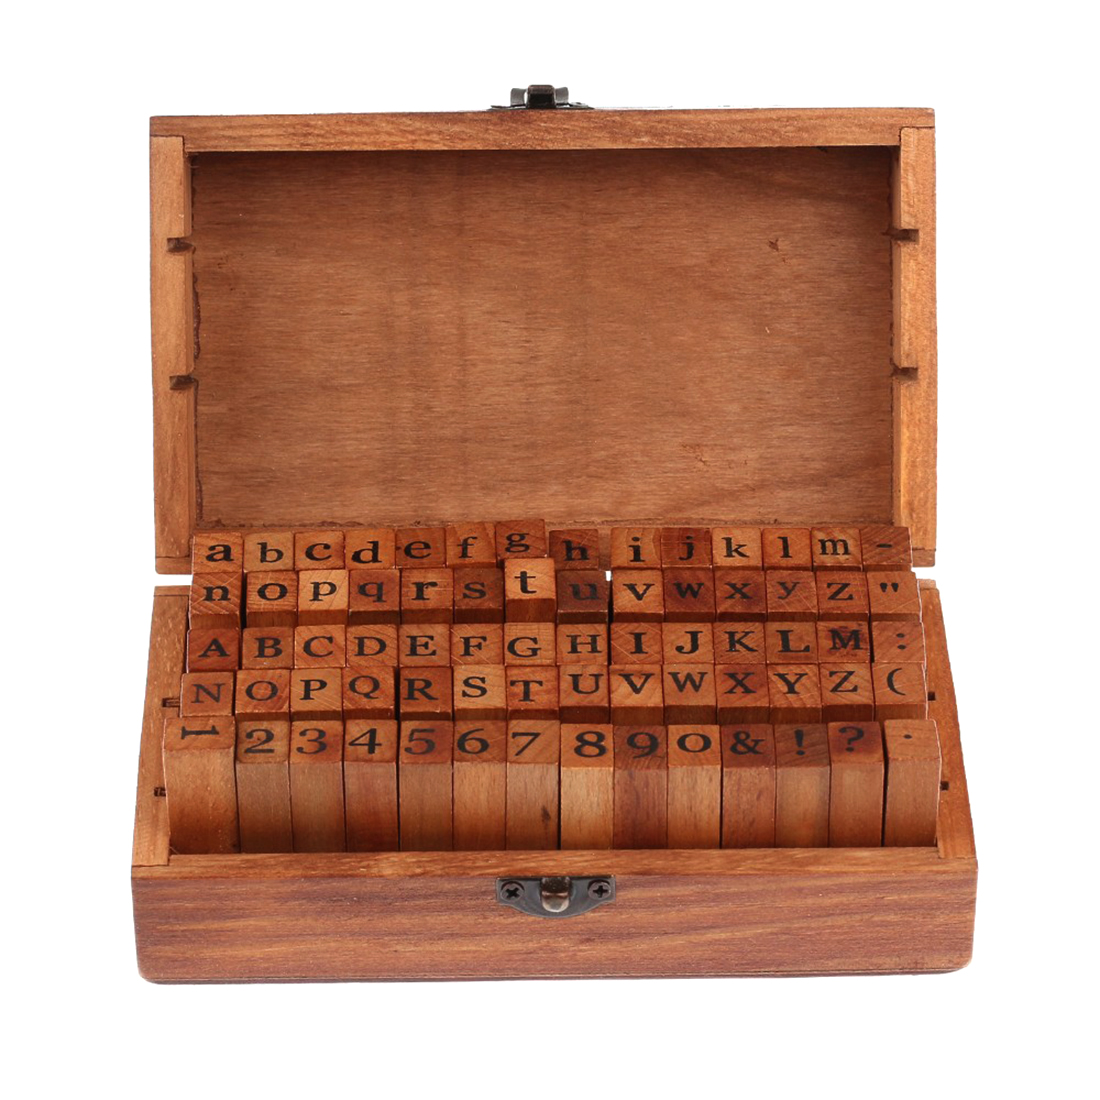 2017 70pcs Vintage DIY Number And Alphabet Letter Wood Rubber Stamps Set With Wooden Box For Teaching And Play Games